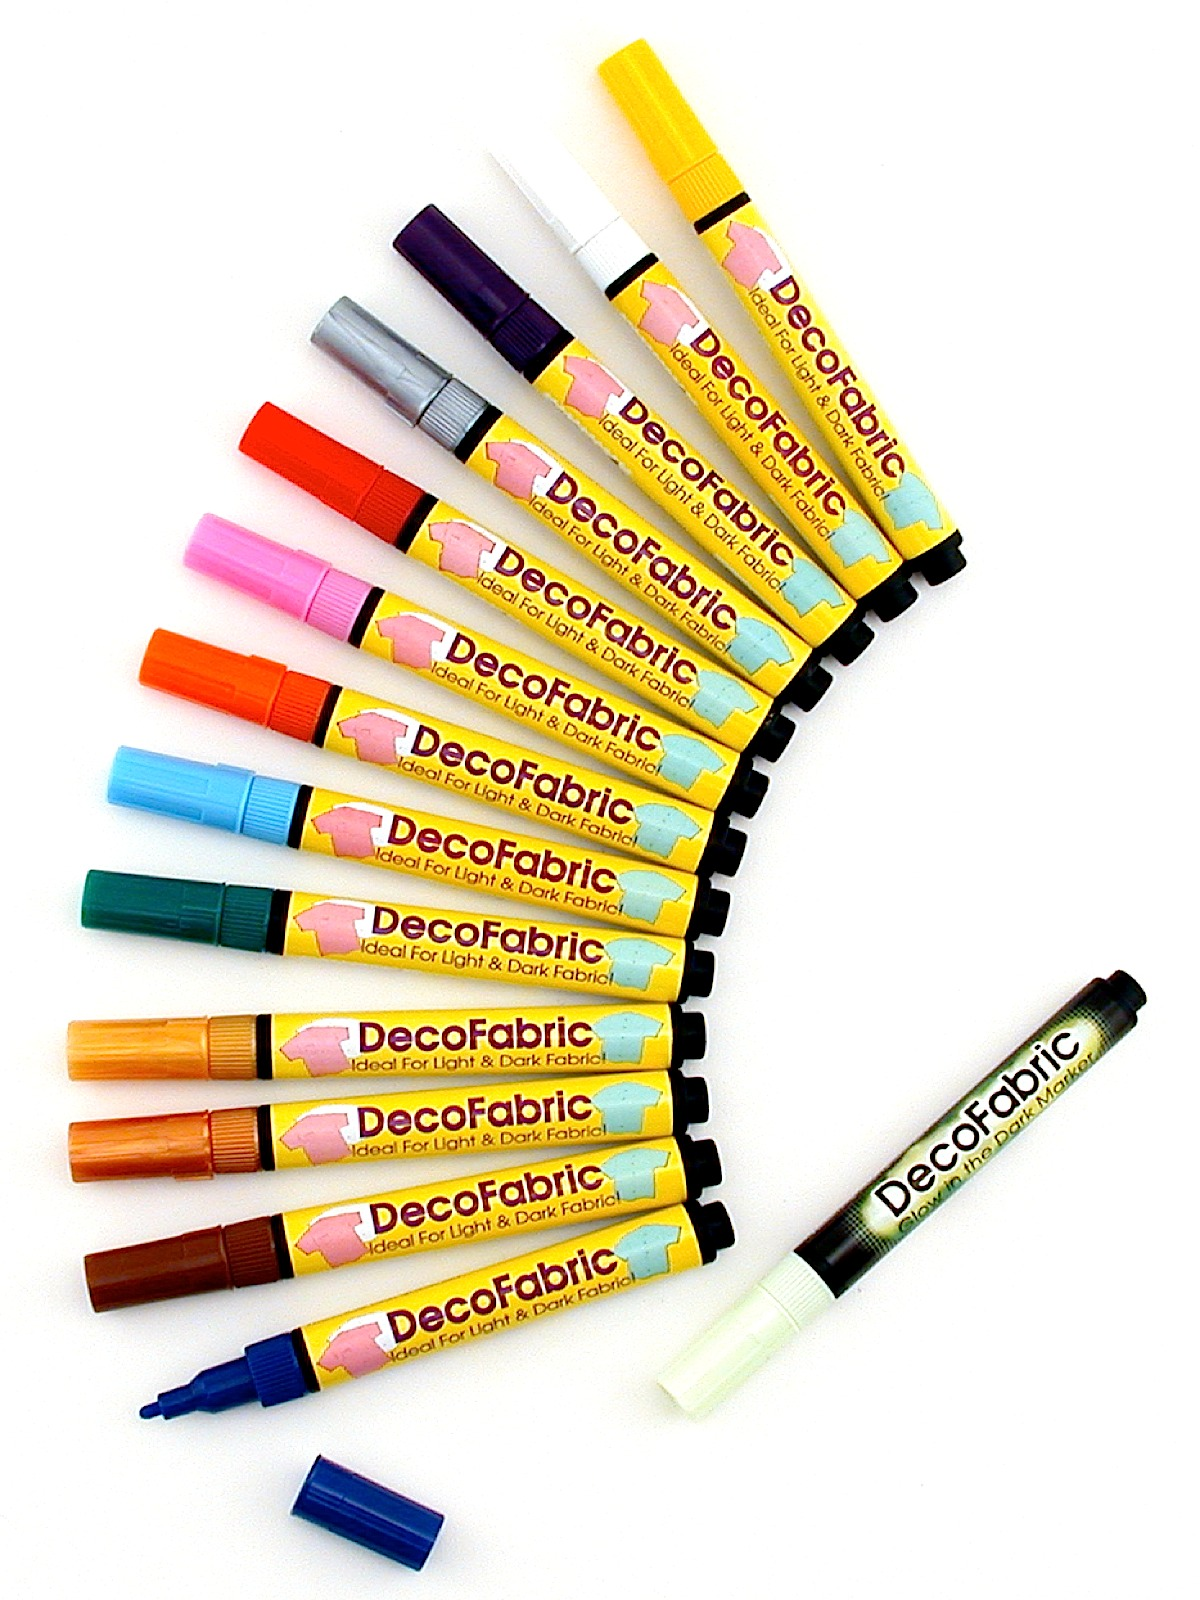 DecoFabric Marker